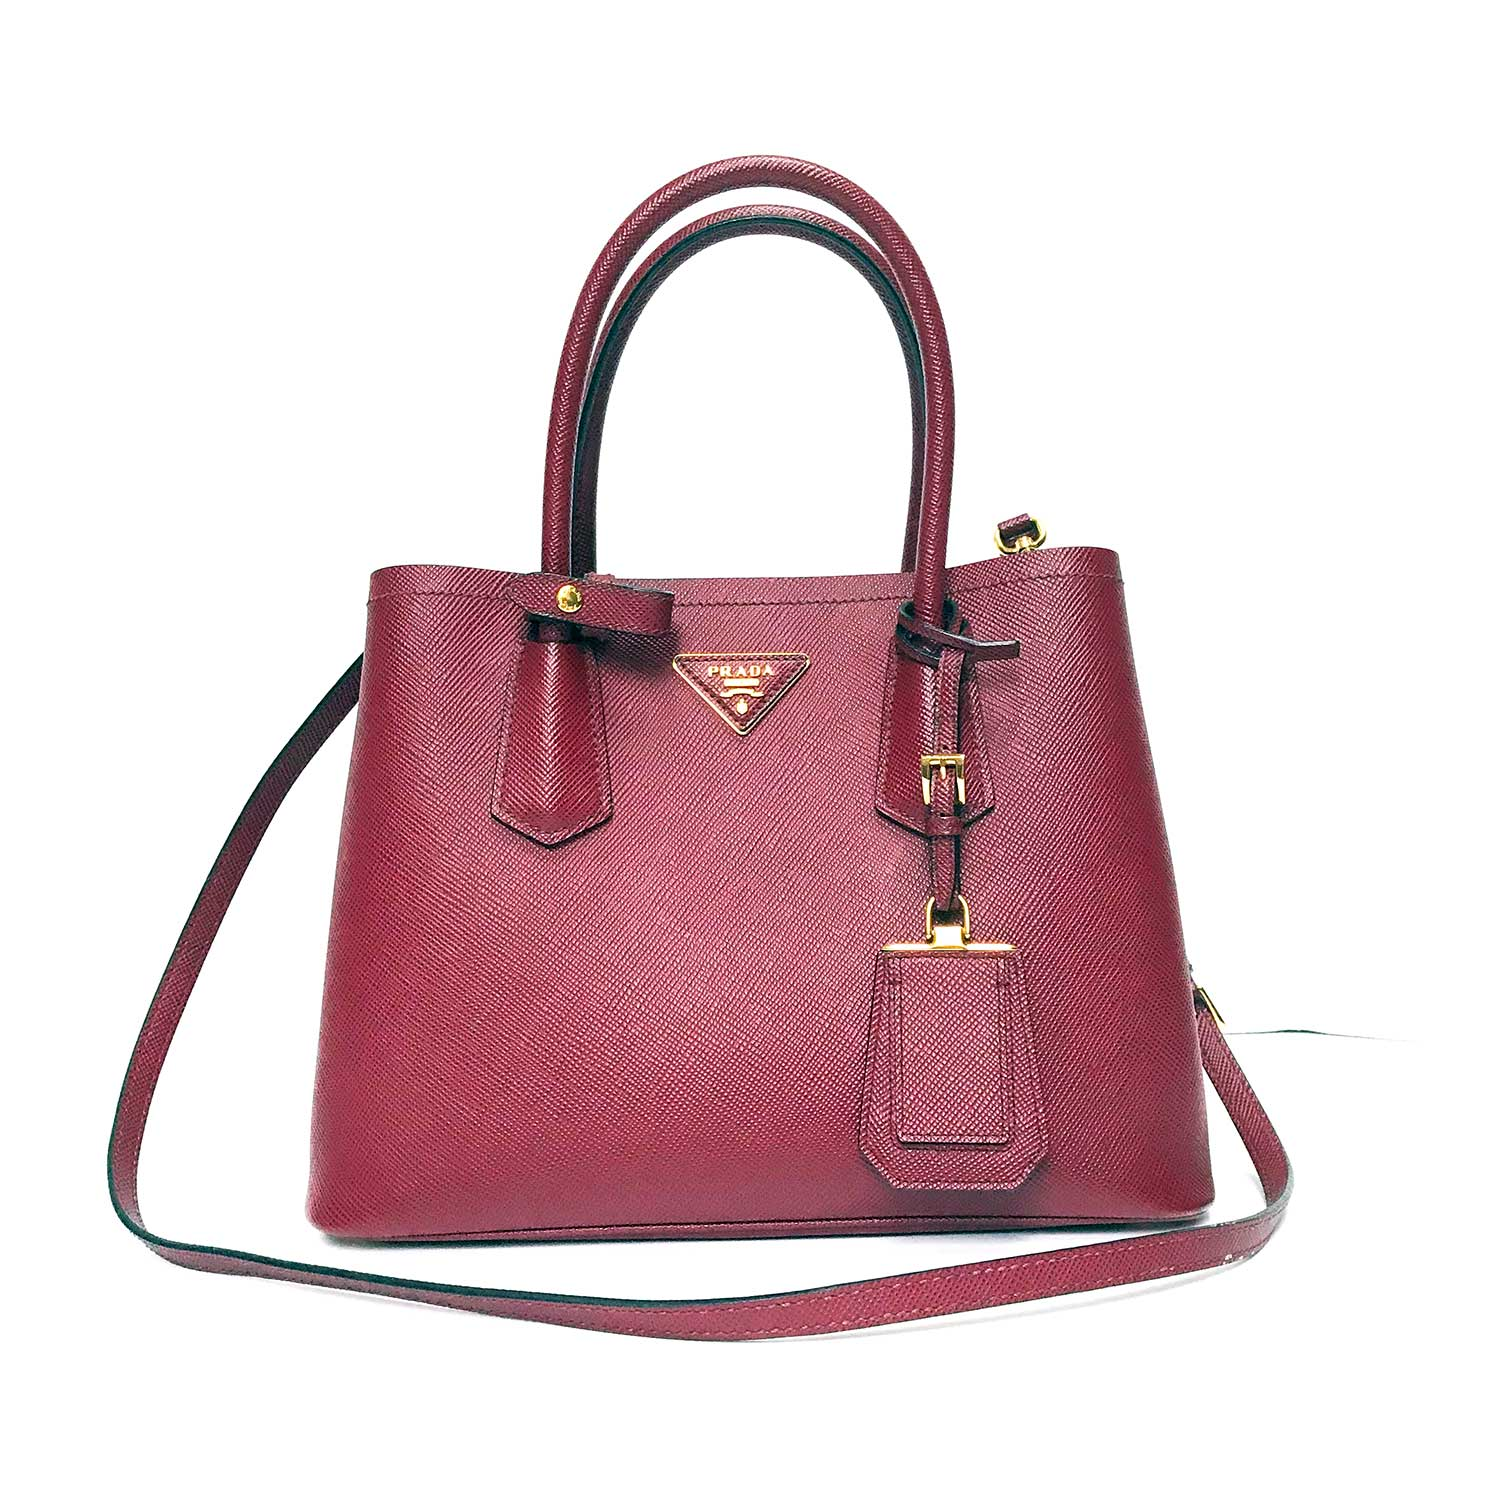 de316c34563a Prada Dk Red Saffiano Leather Execute Tote Bag | | My Personal Shoppers